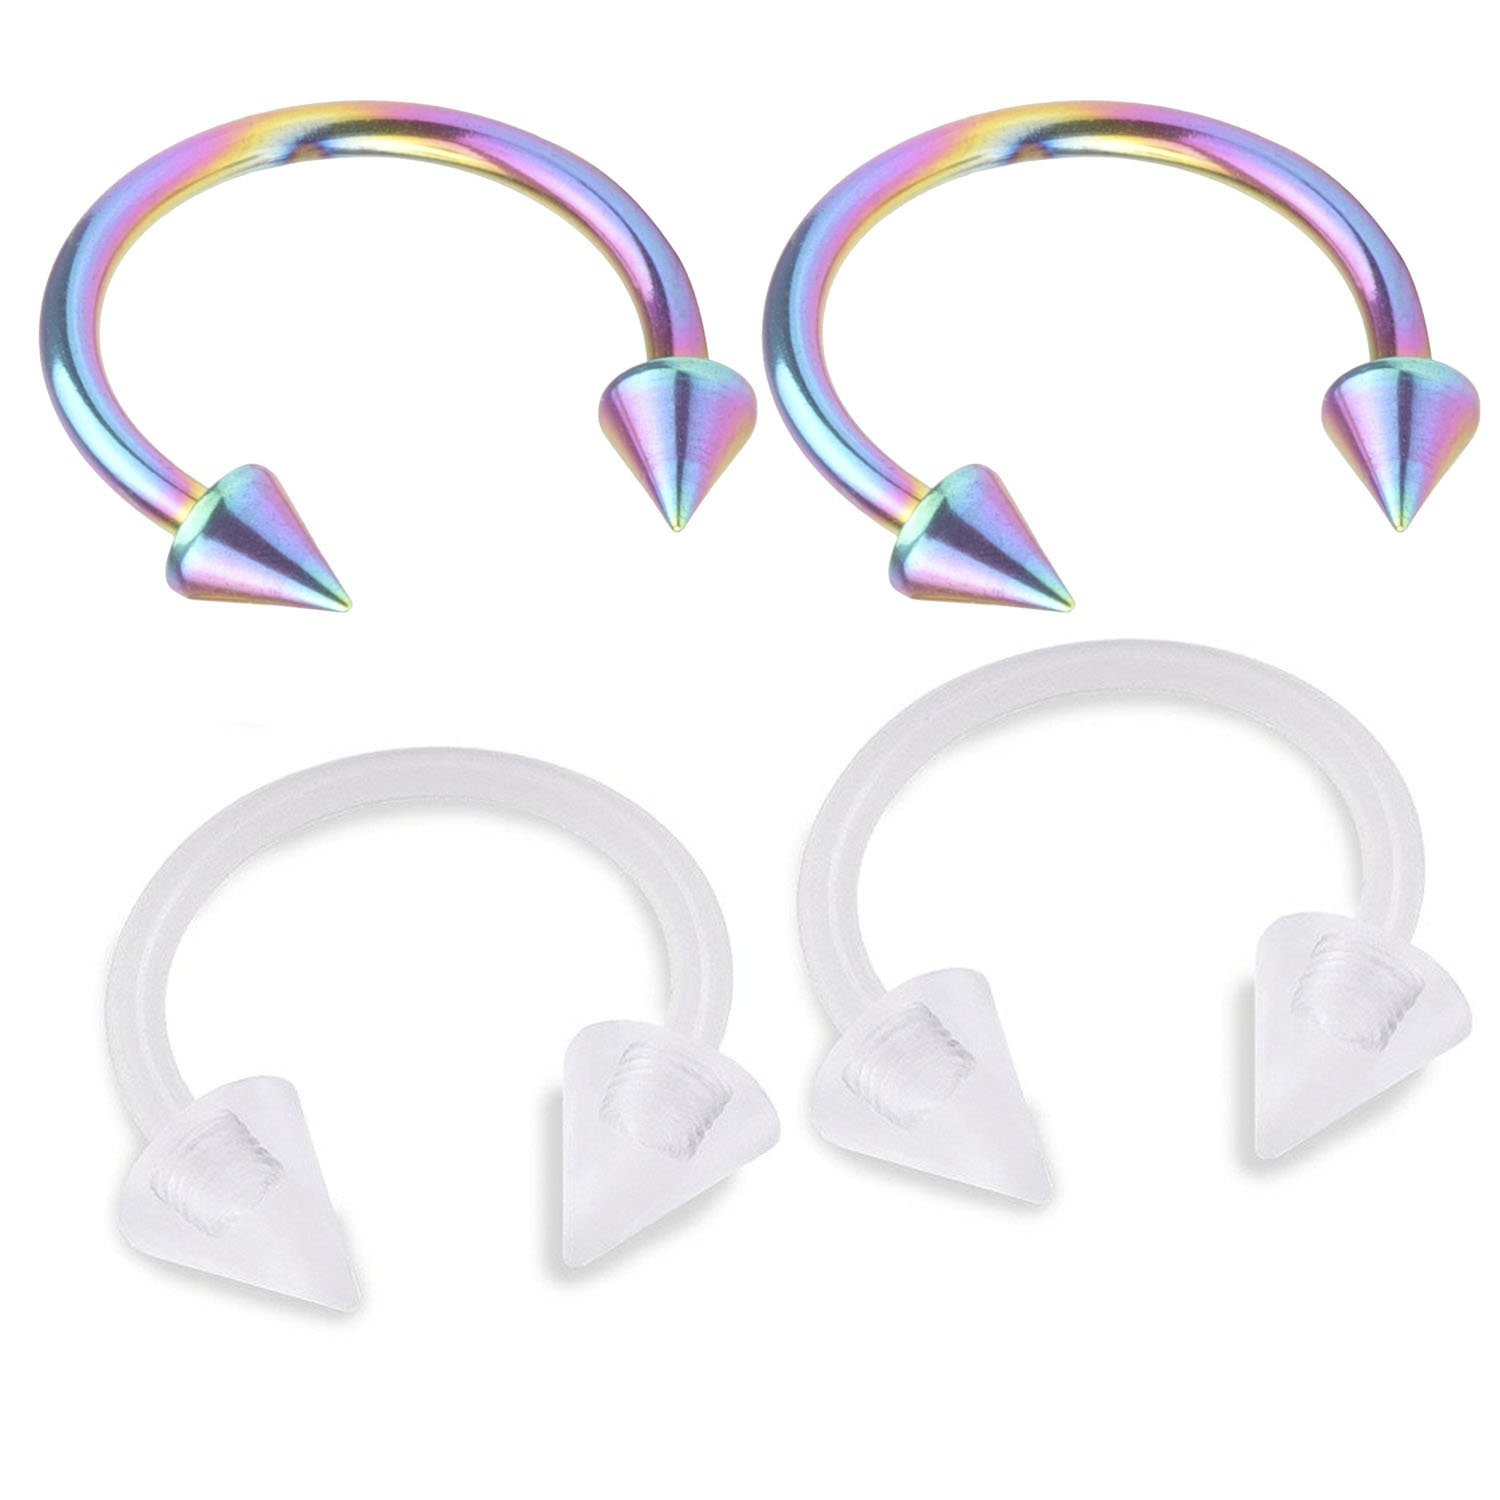 DUY's 2Pair 16G 8mm Horseshoe Ring Circular Barbell Cartilage Hoop Septum Nose Lip Eyebrow Tragus Rainbow And Acrylic Spike